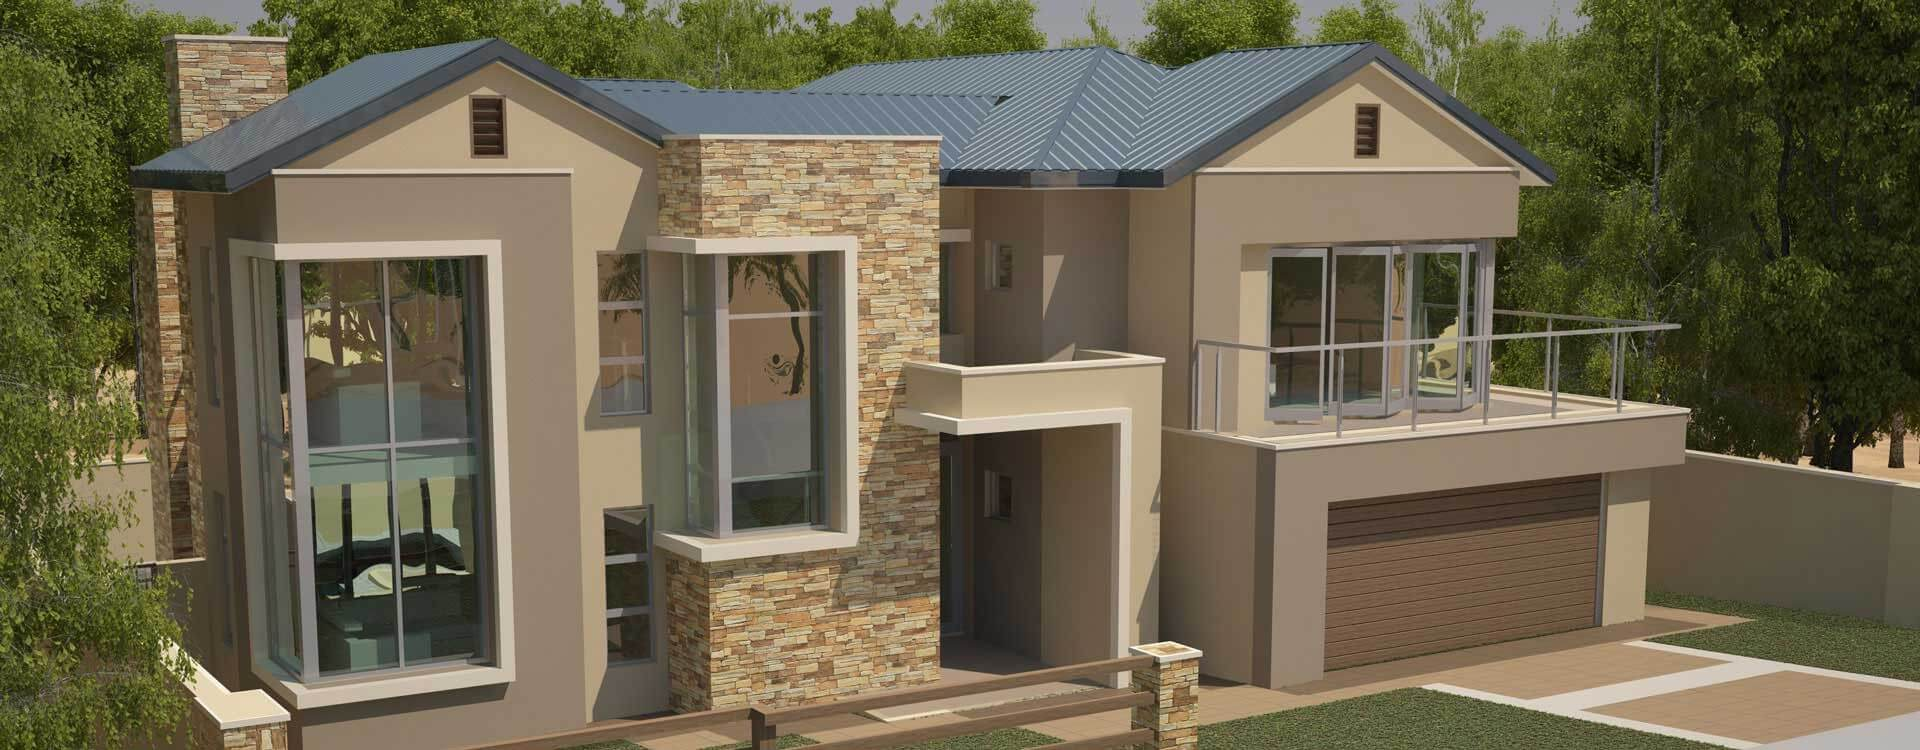 Lovely Modern Contemporary Style, House Plans, 4 Bedroom, Double Storey Floor Plans,  Modern